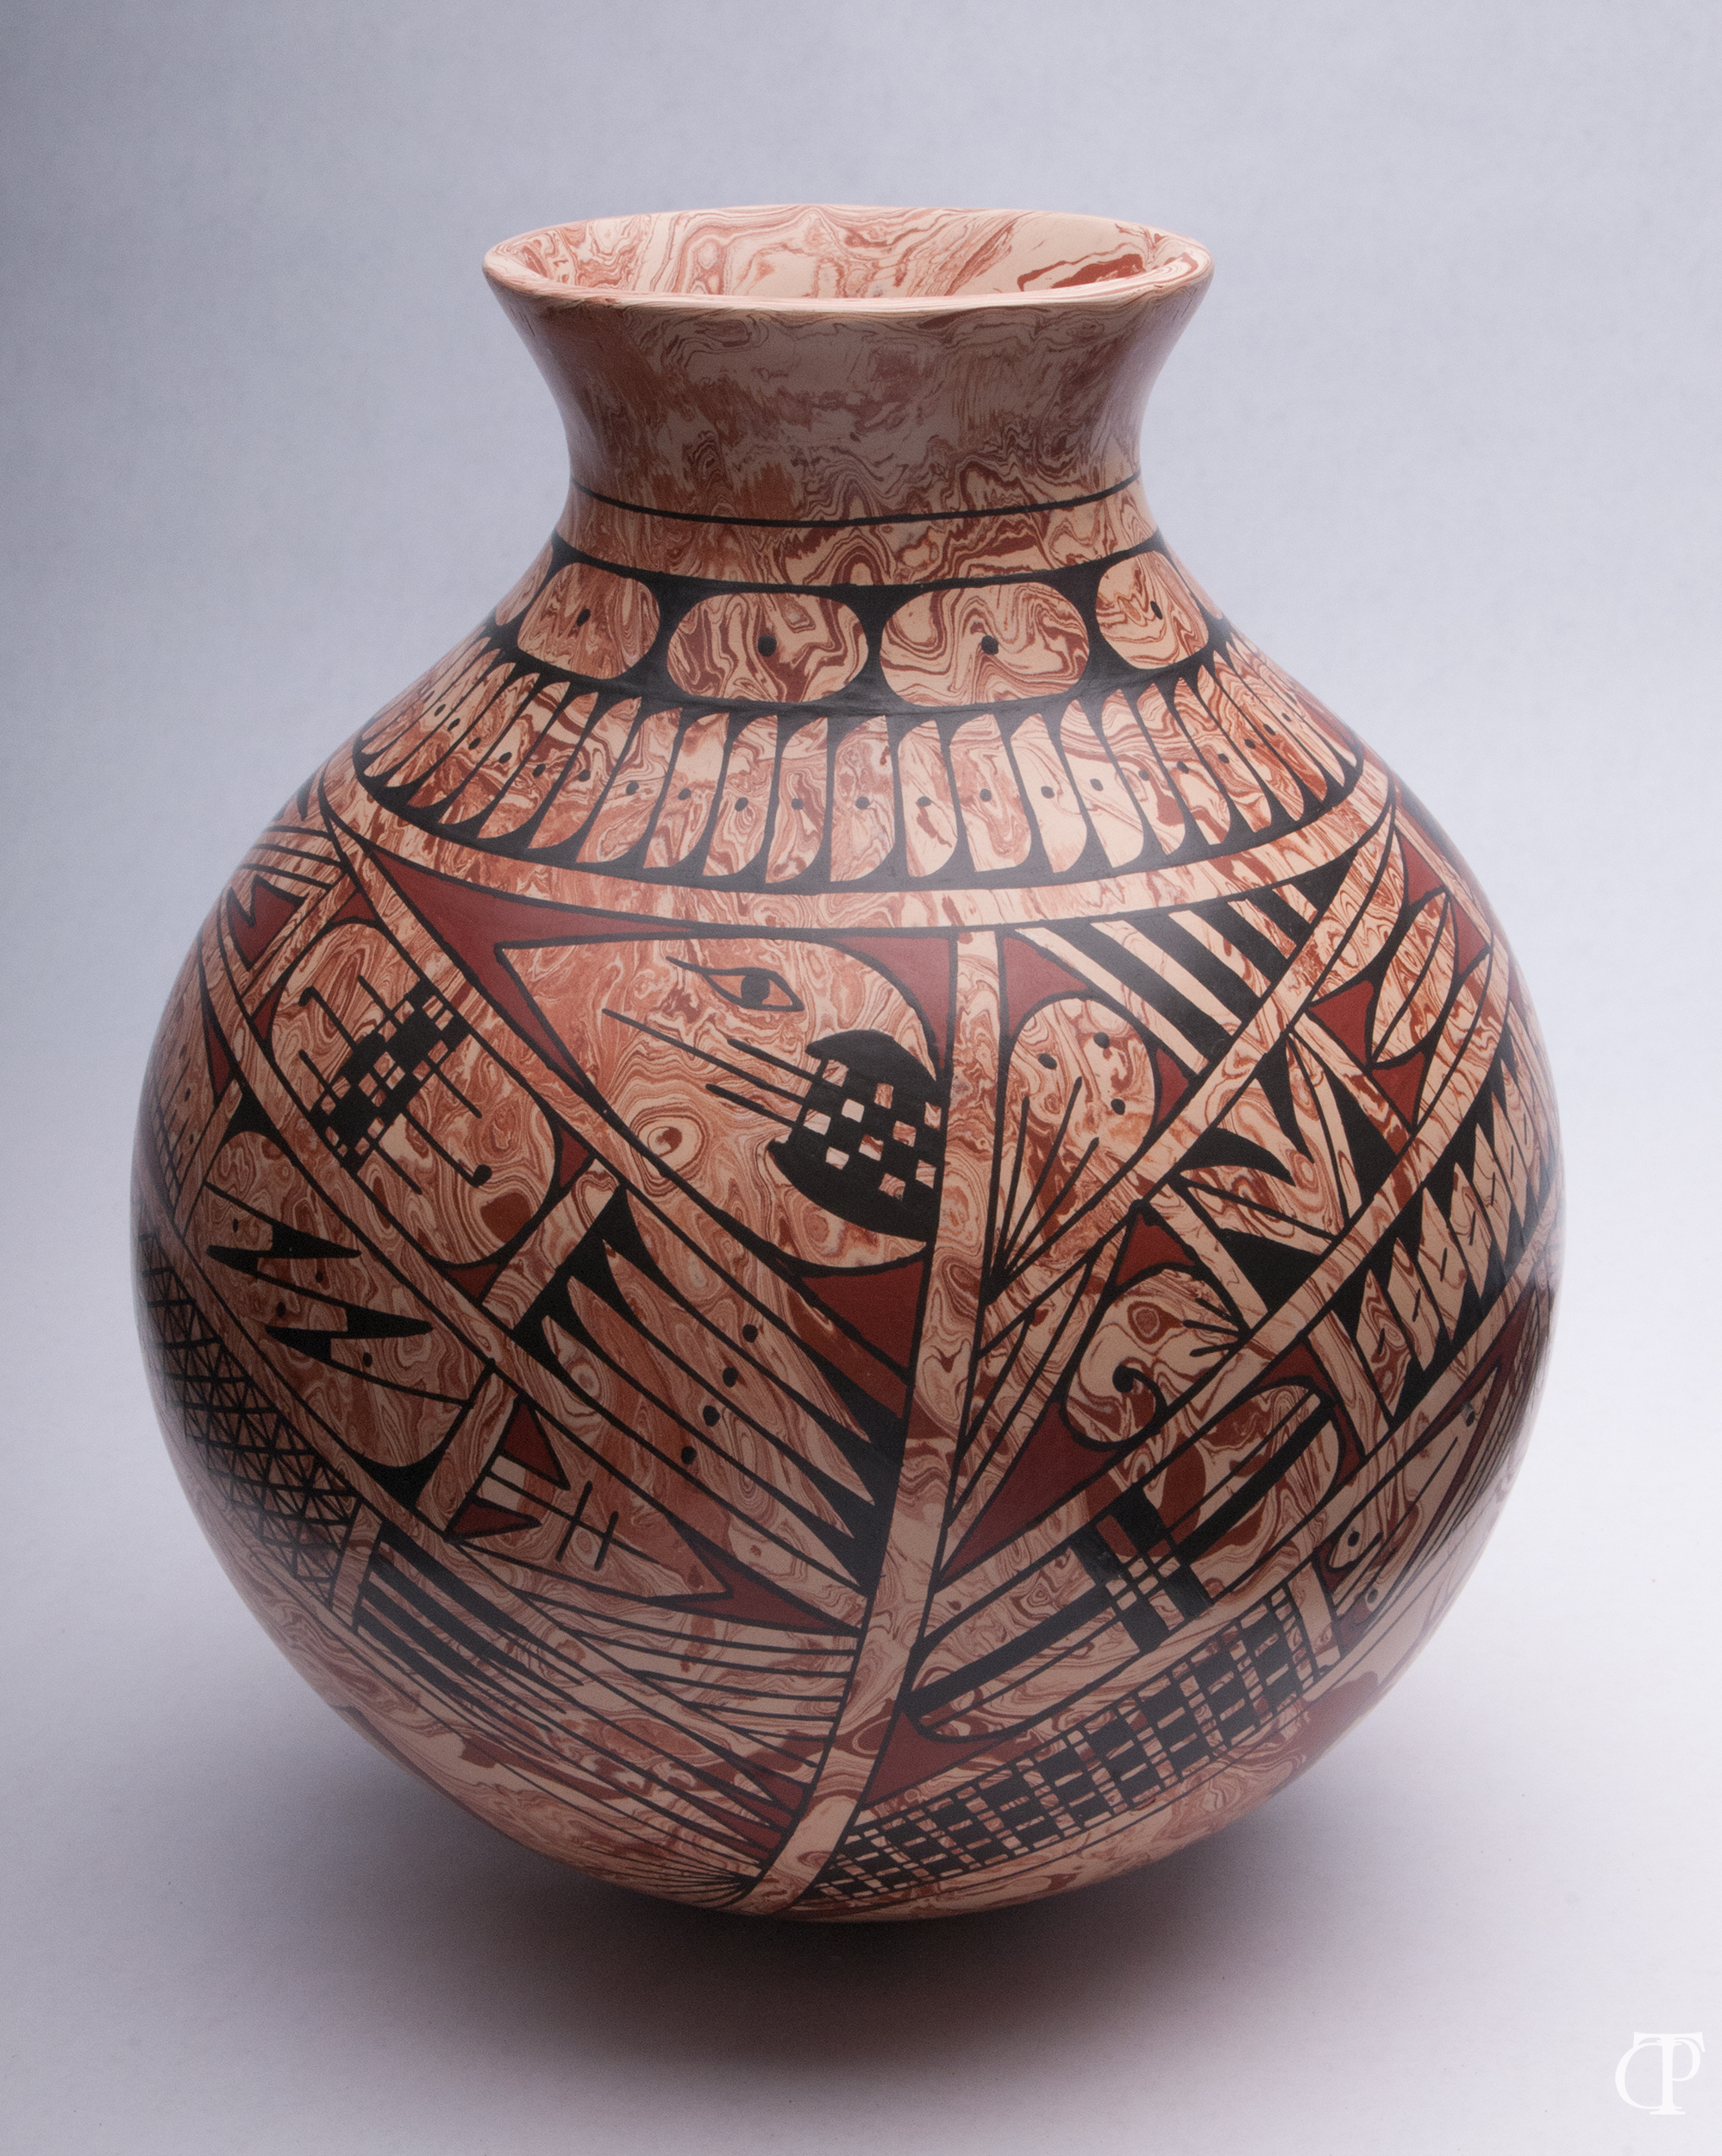 Ceramics - Photographing ceramics is more than just getting the basic shape and color. Good pottery has tactile features as well, and often an emotional sense, both of which must be conveyed in a photograph as well.